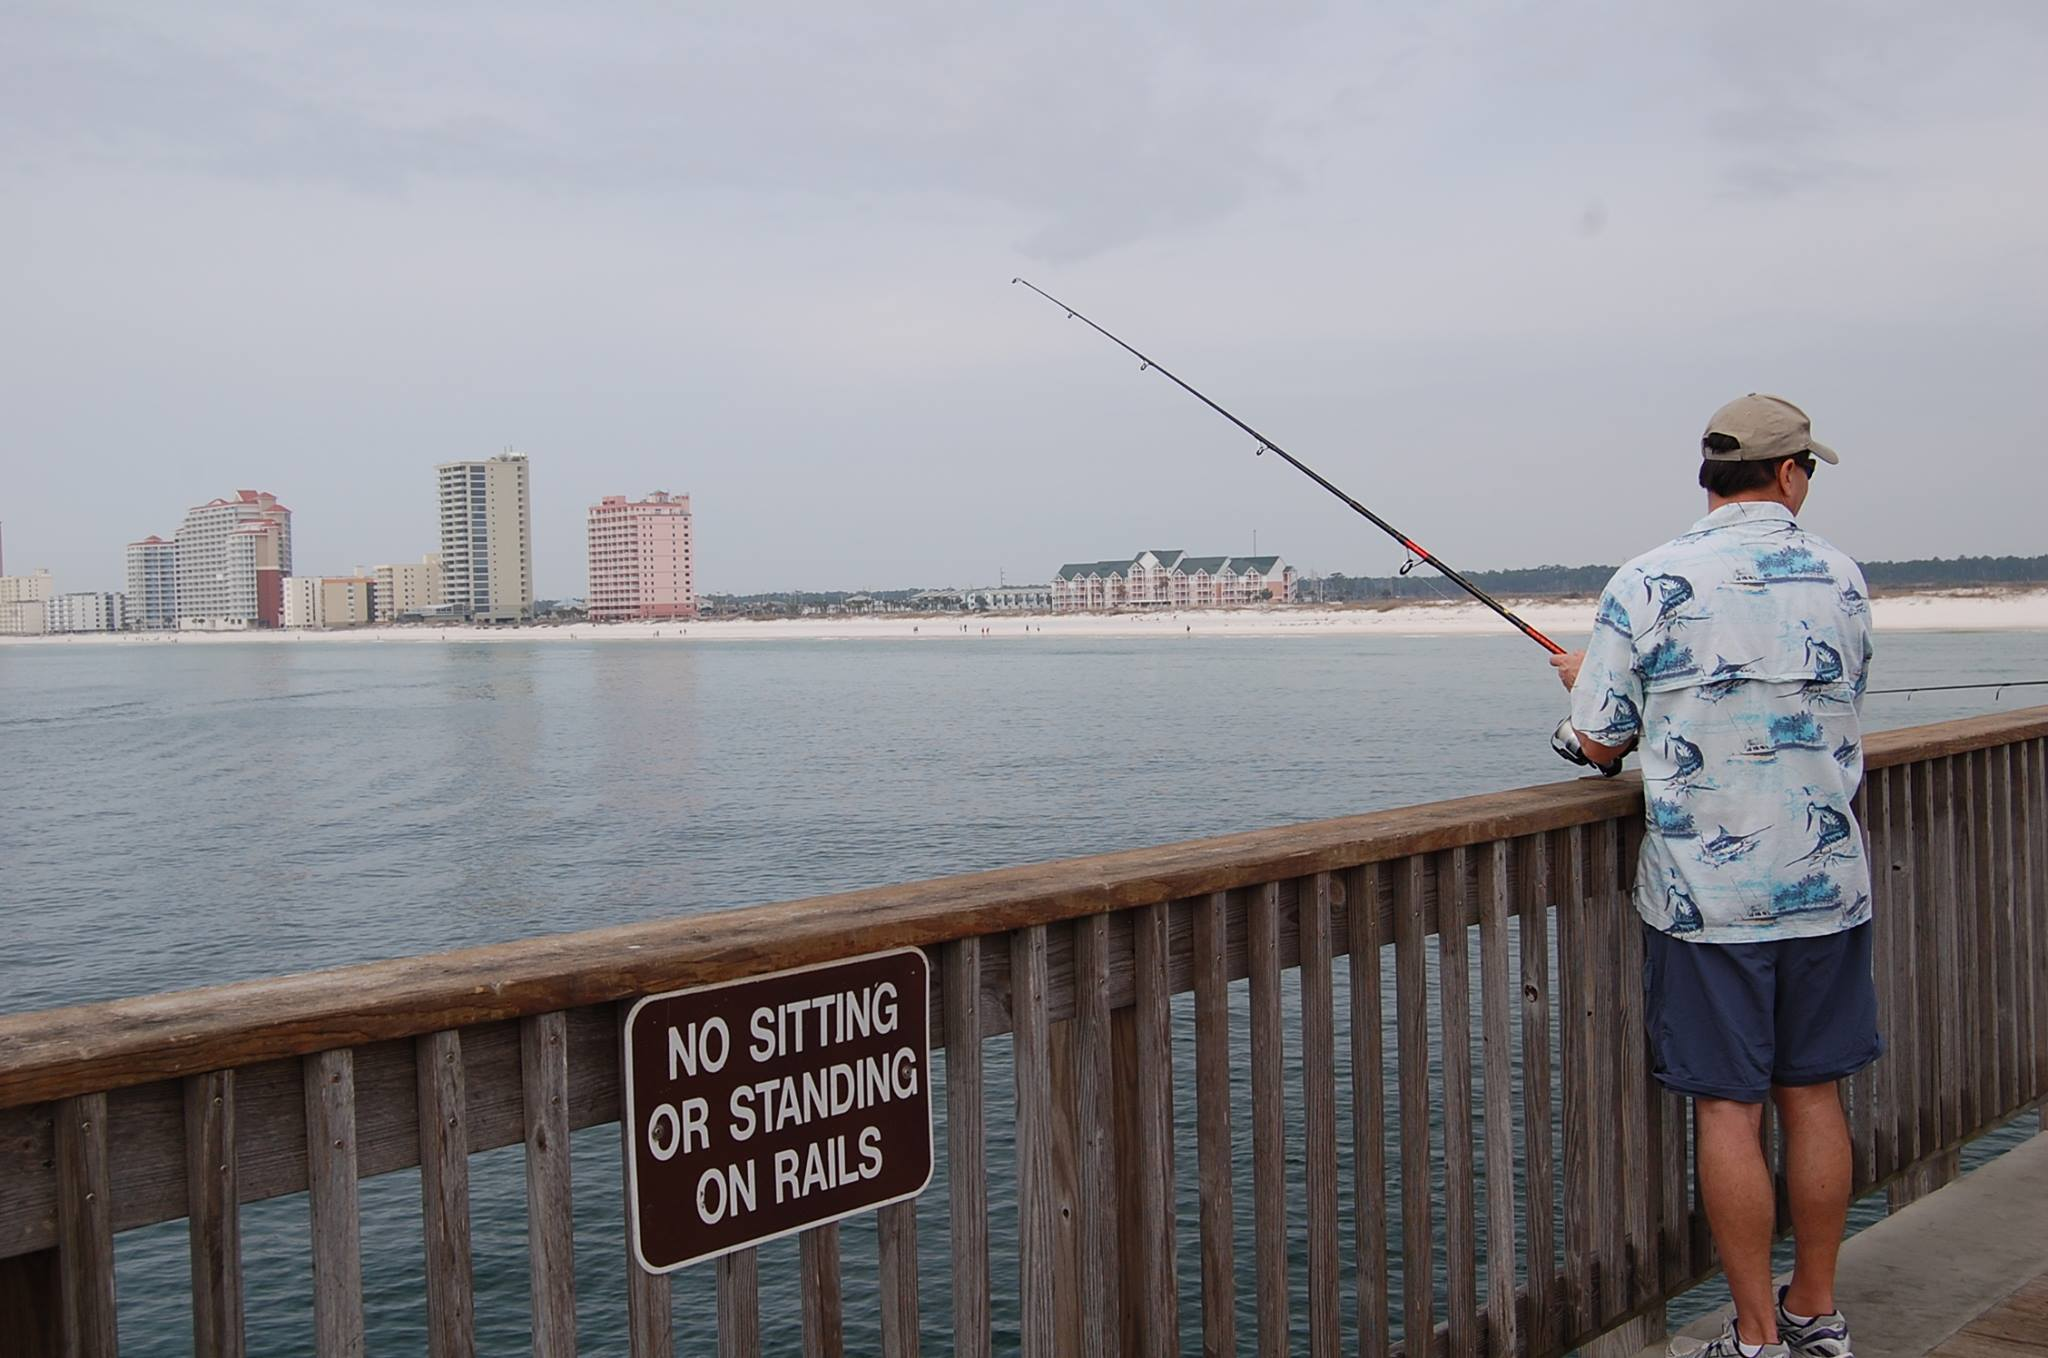 Fishing at Young's Suncoast.